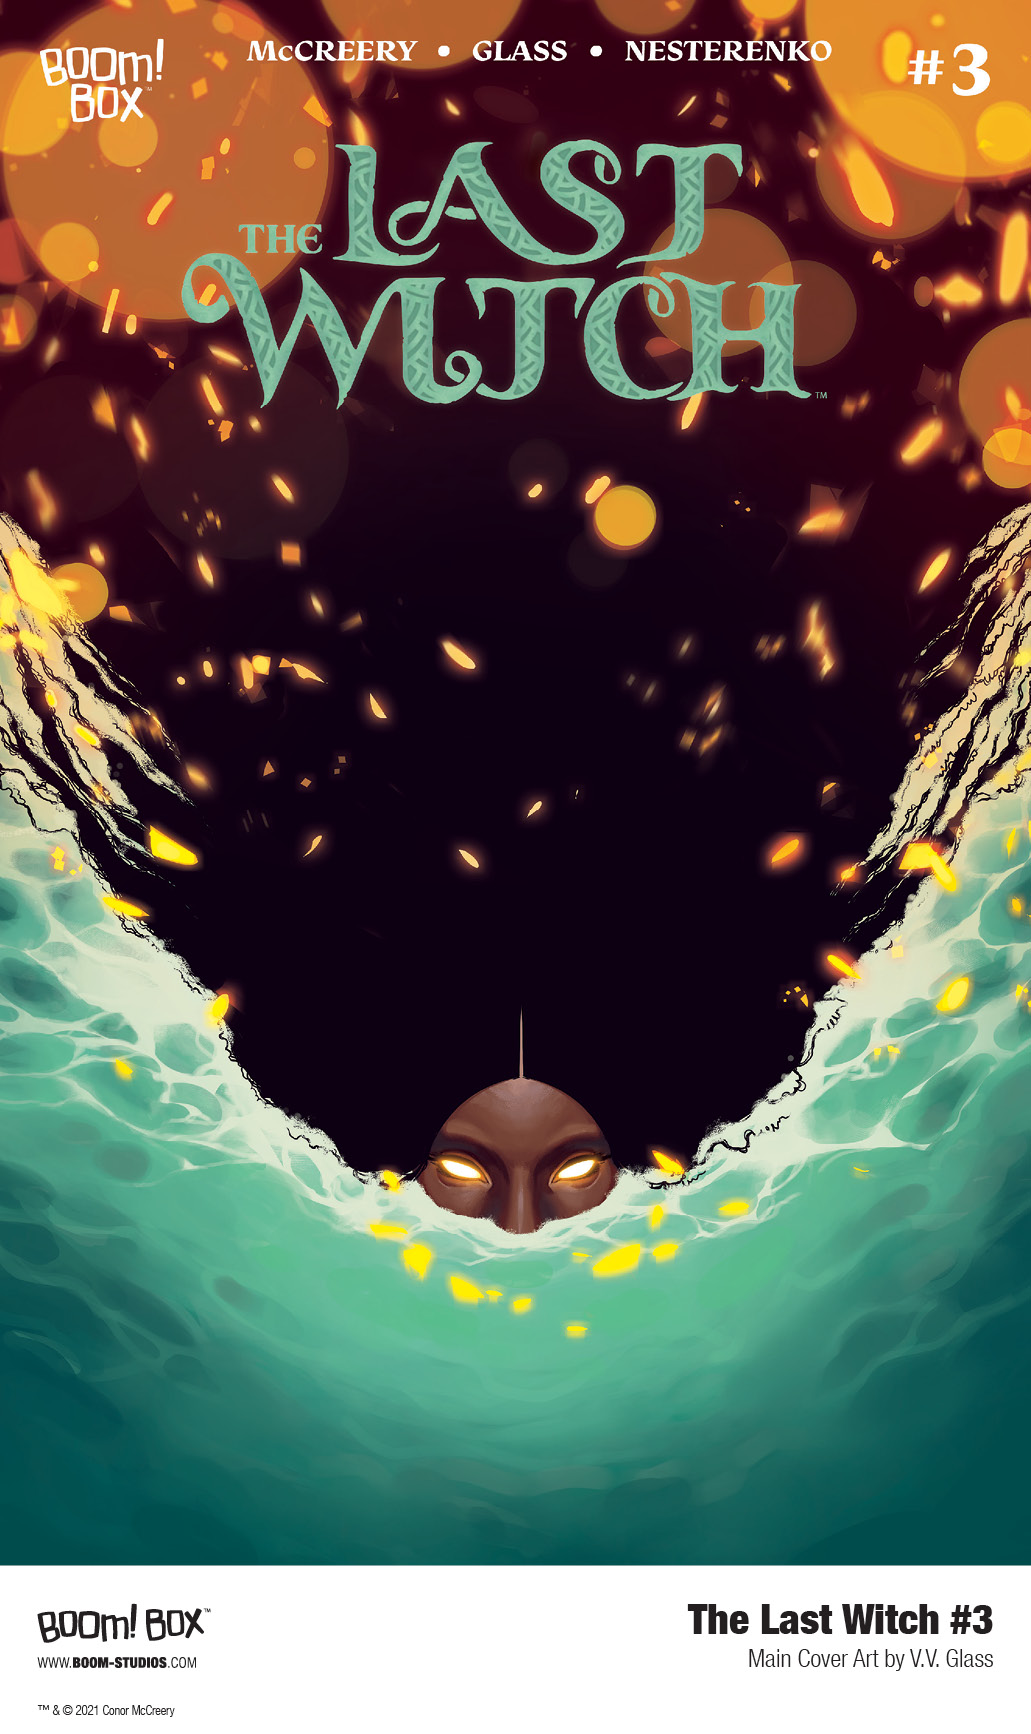 THE LAST WITCH #3 - Main Cover